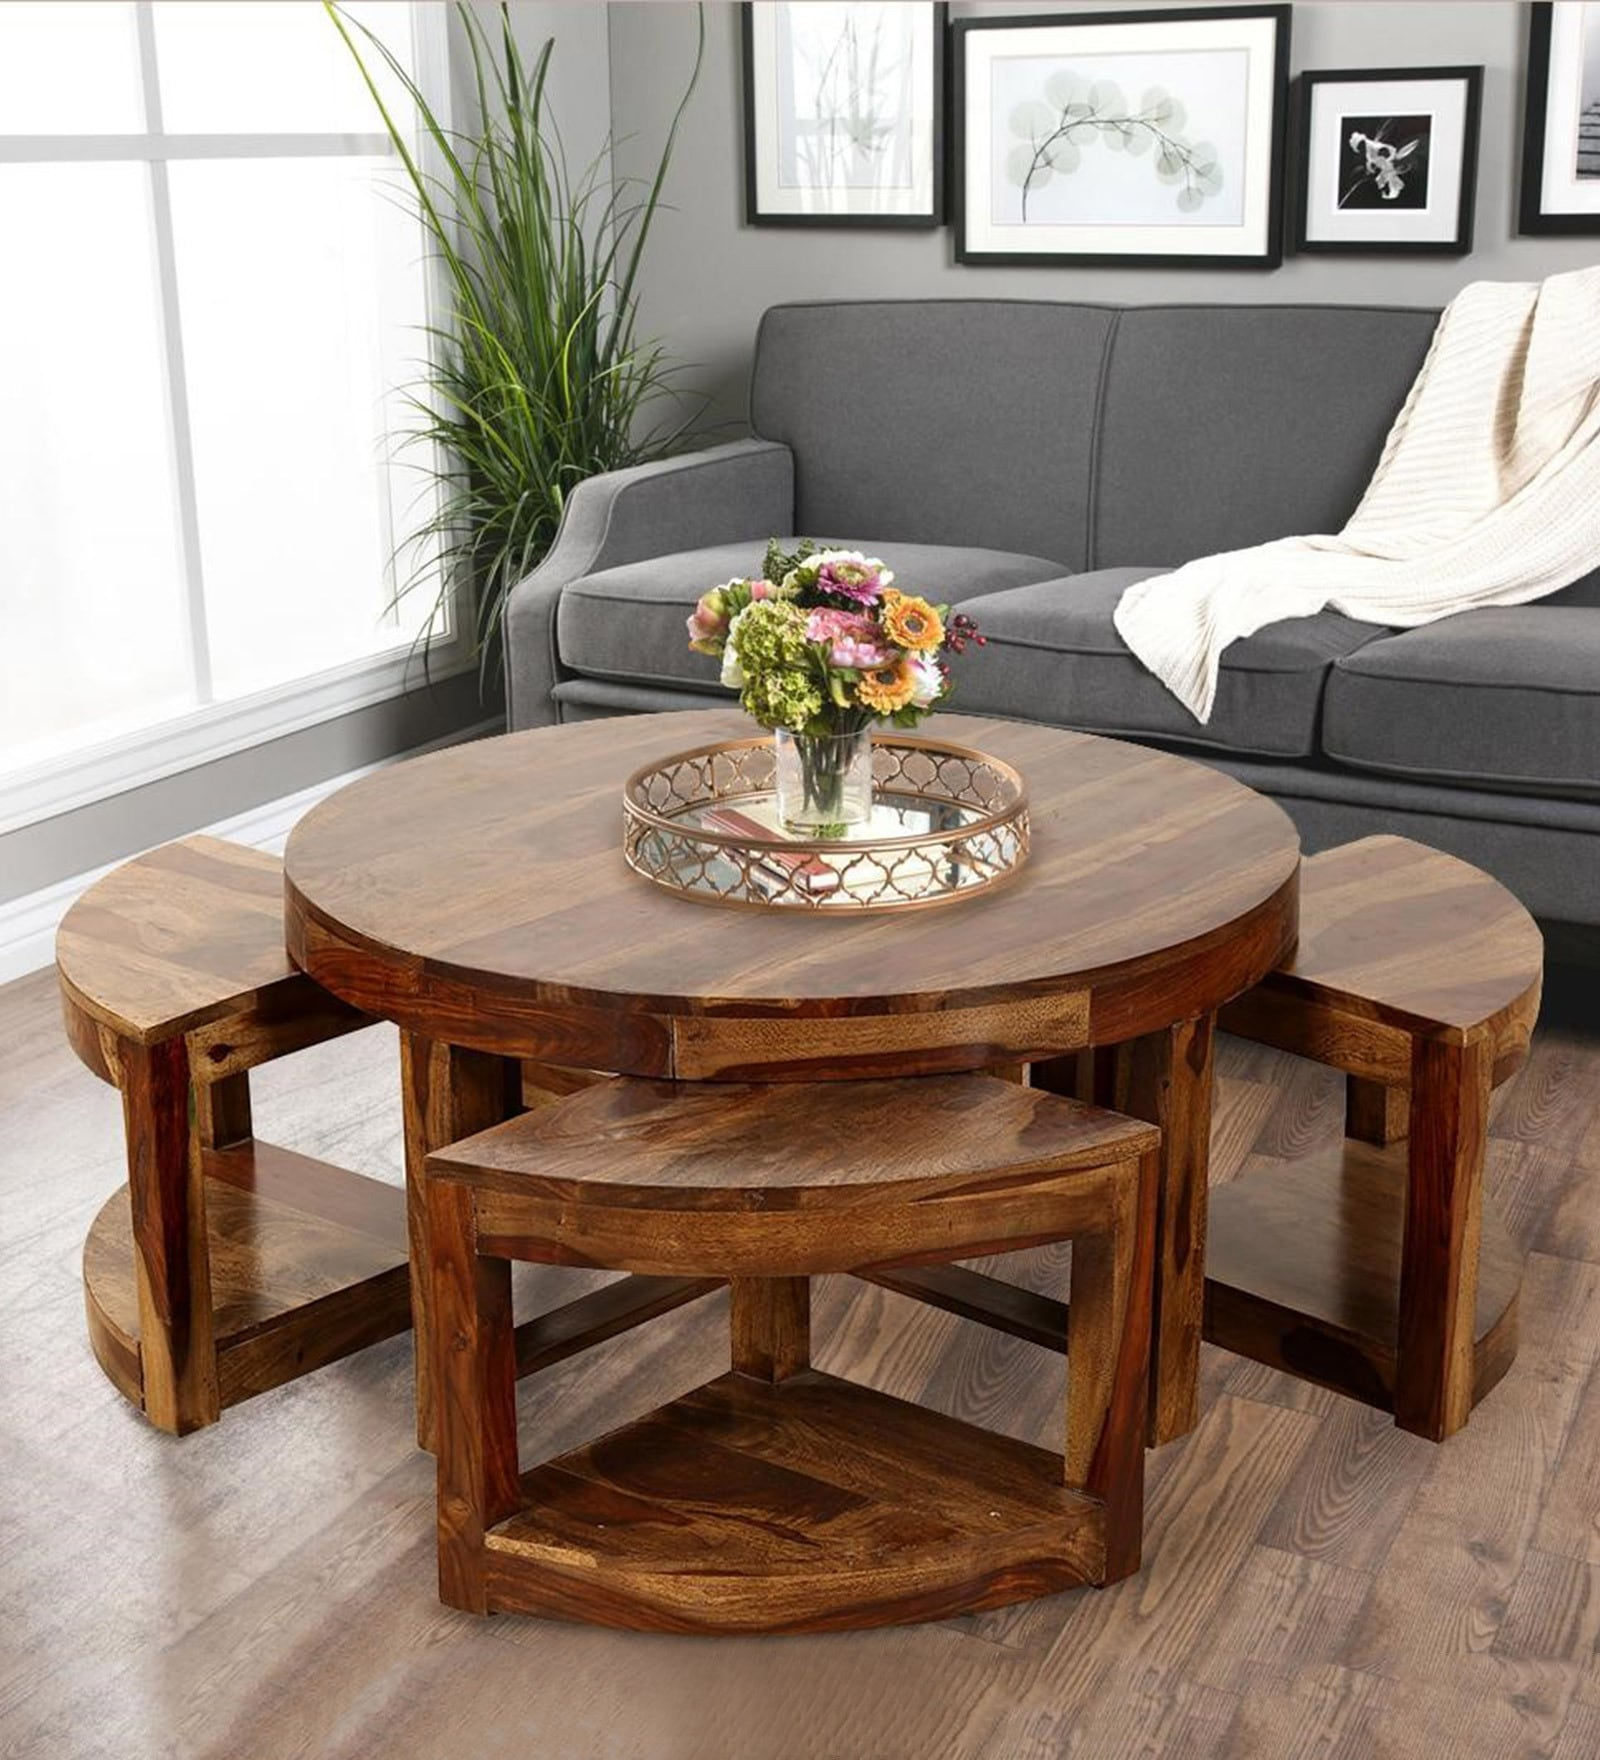 - Round Sheesham Solid Wood Coffee Table With 4 Stools Finish By MFT